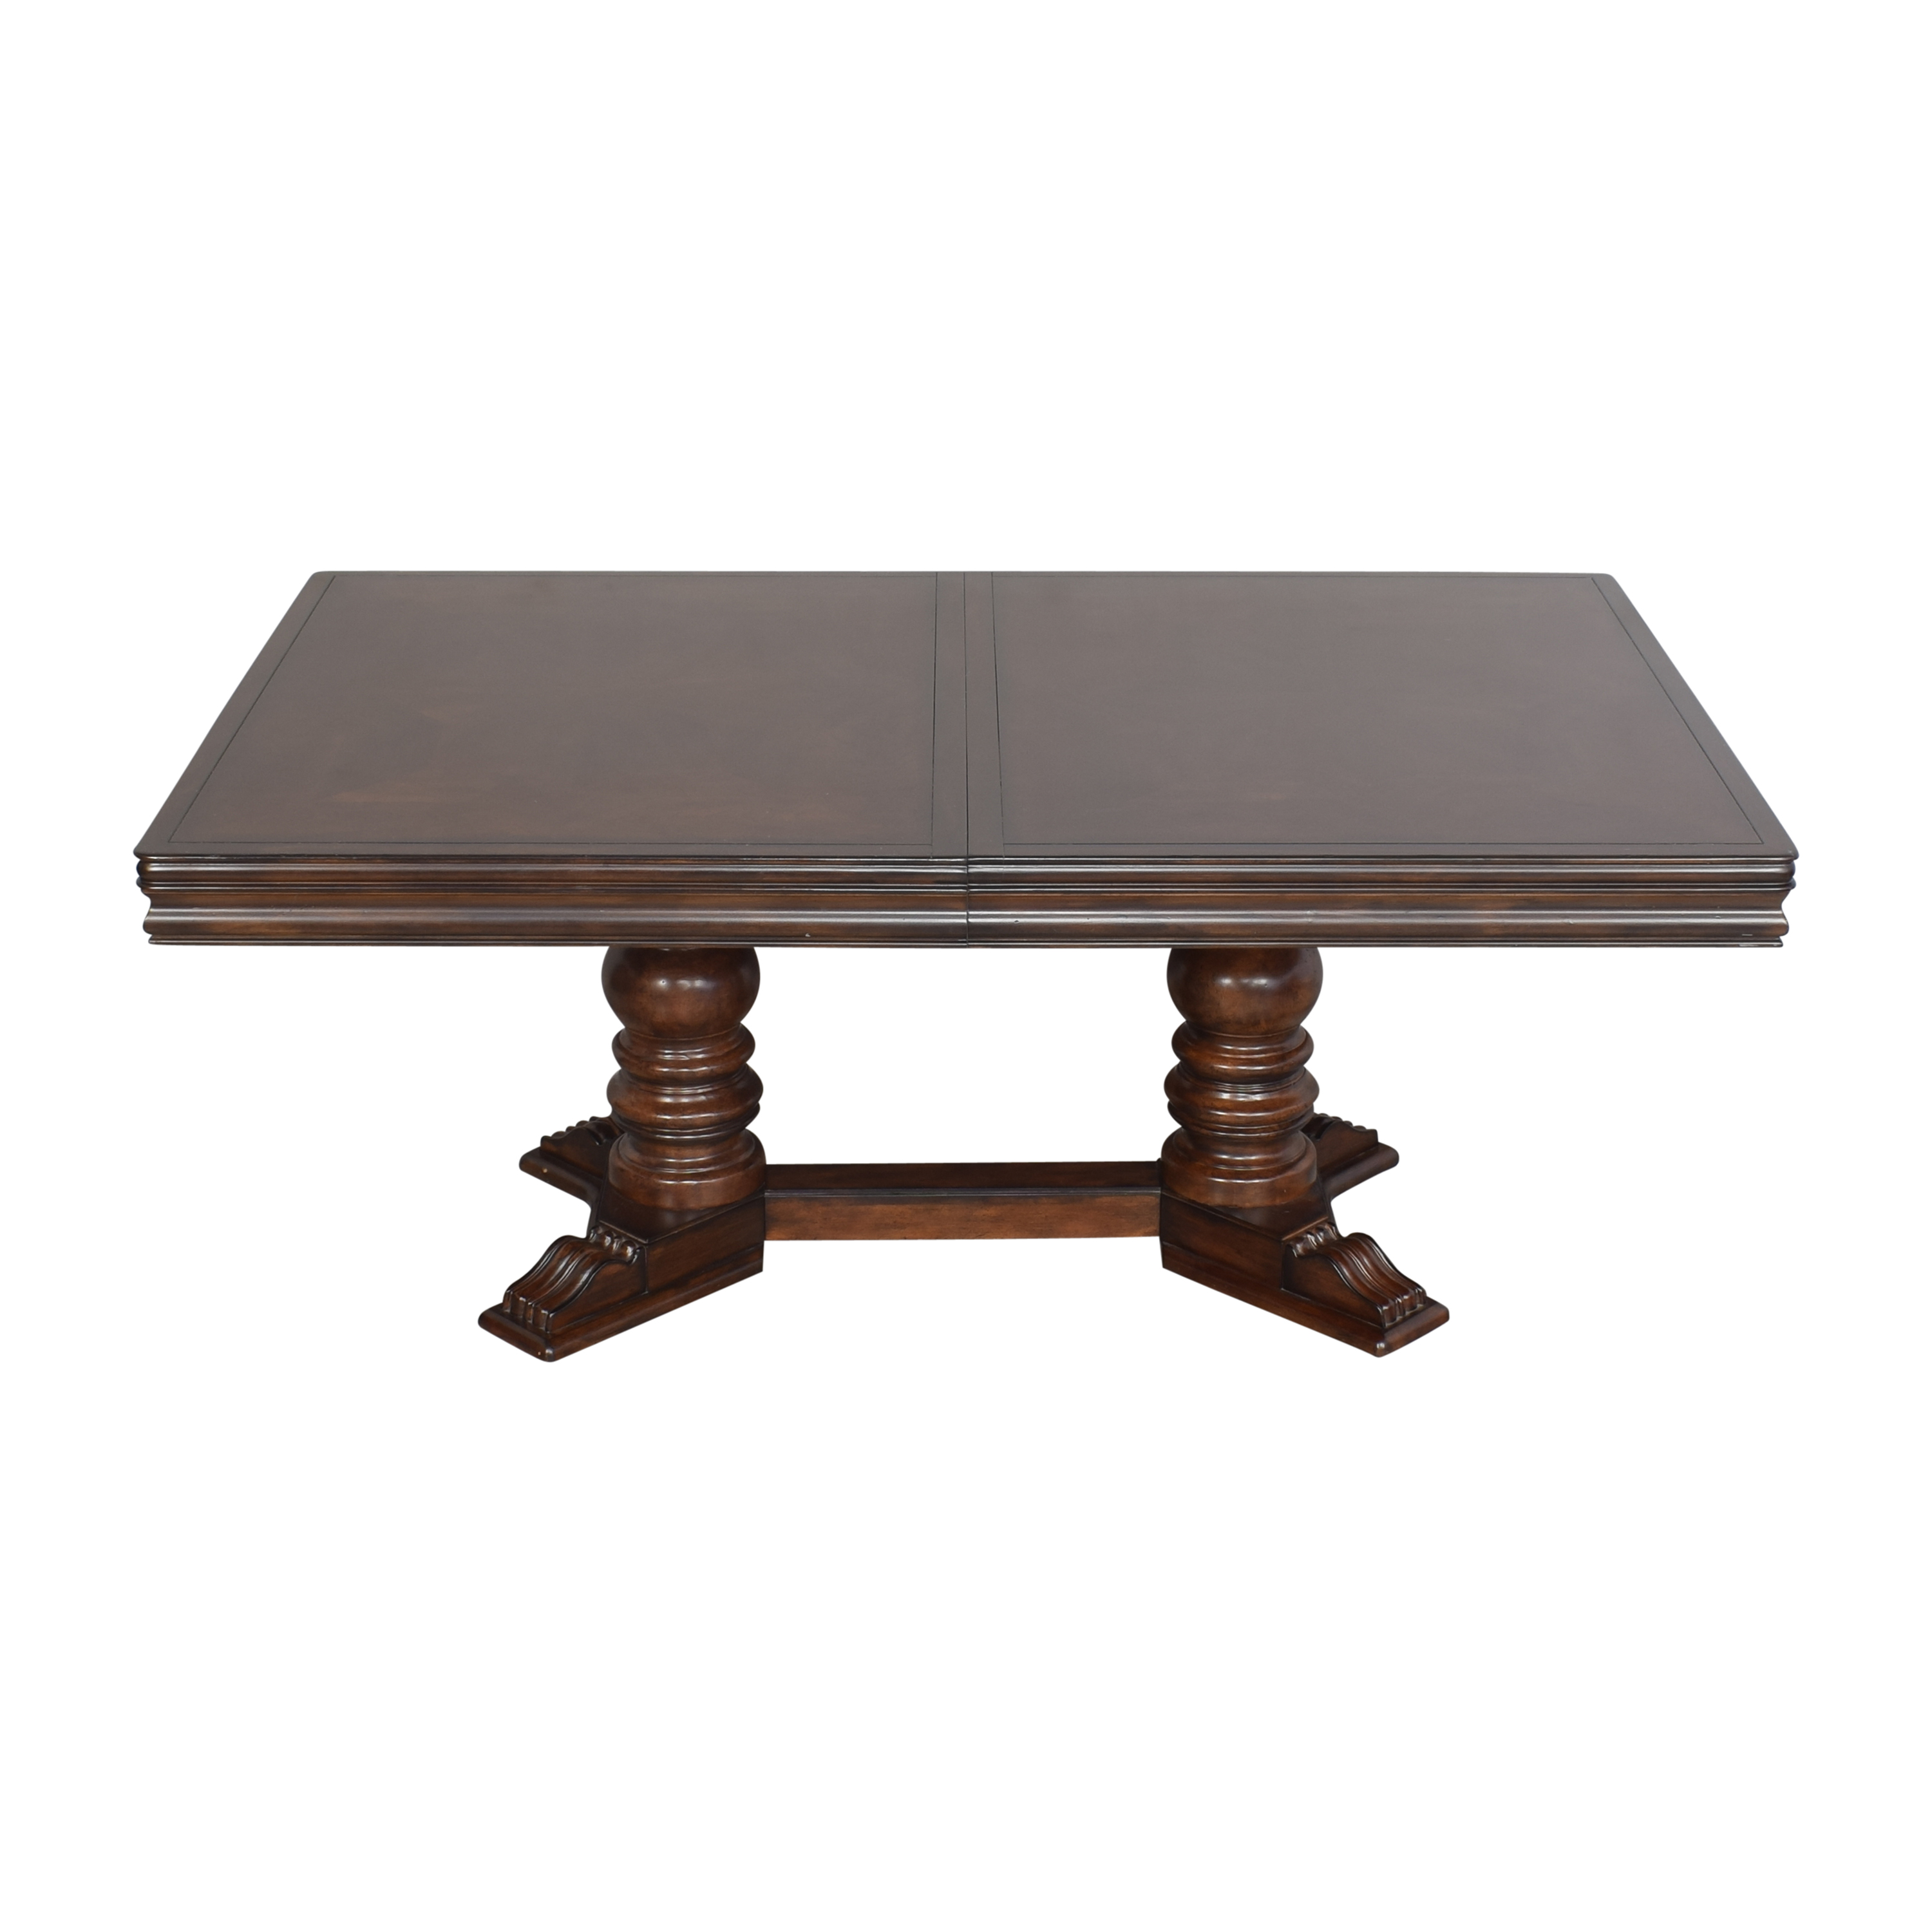 Legacy Classic Furniture Legacy Classic Furniture Extendable Dining Table price